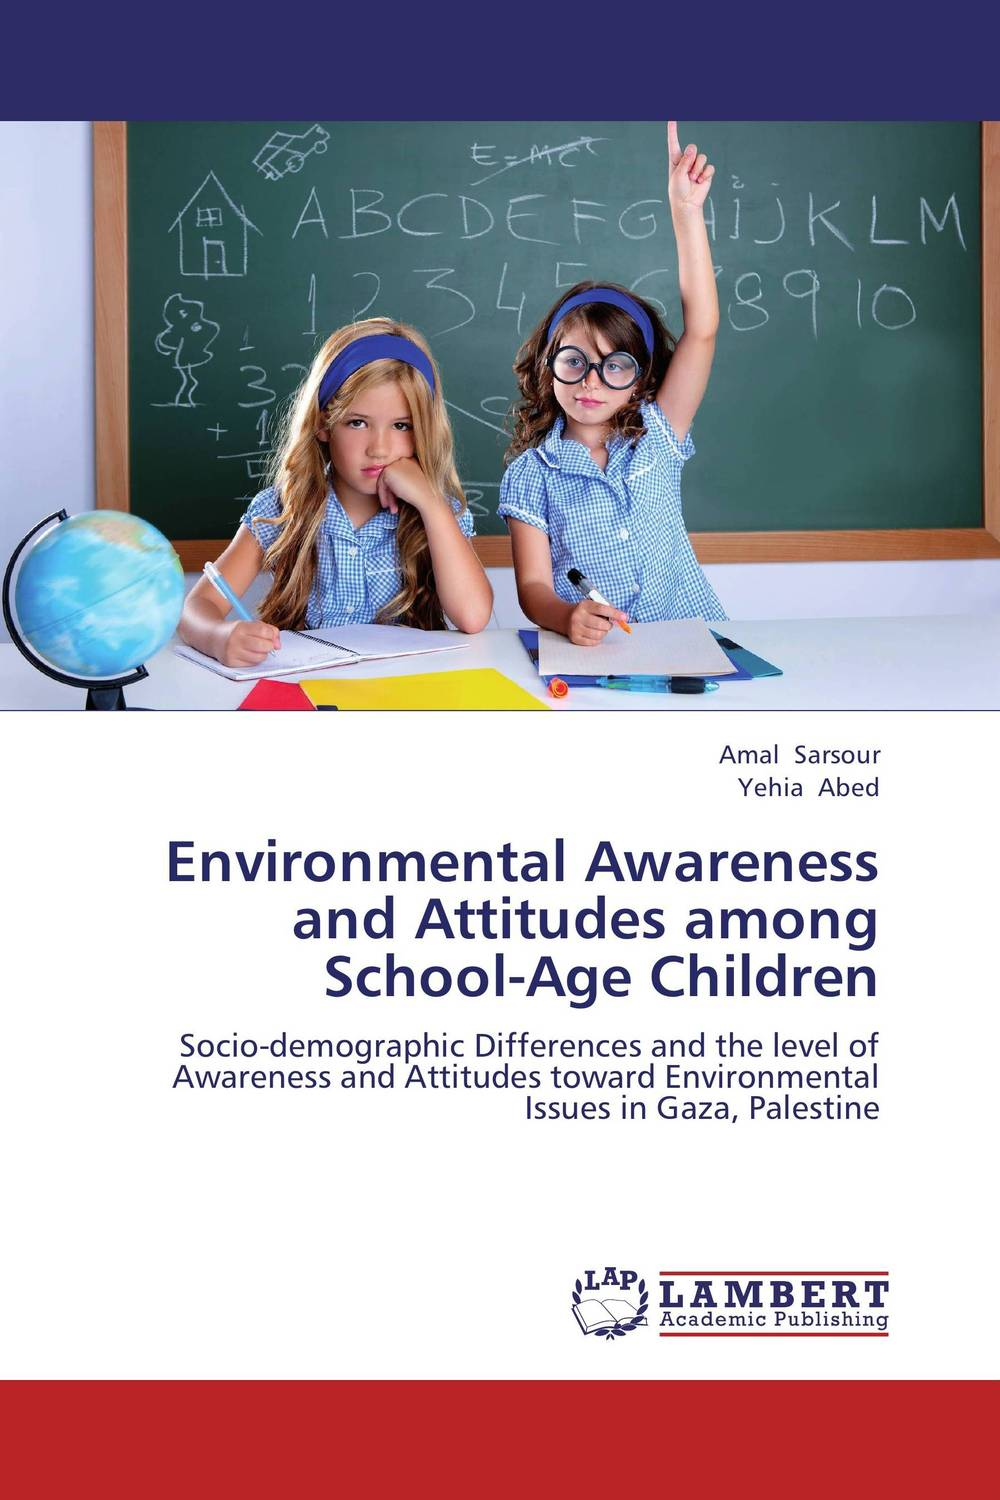 Environmental Awareness and Attitudes among School-Age Children role of school leadership in promoting moral integrity among students